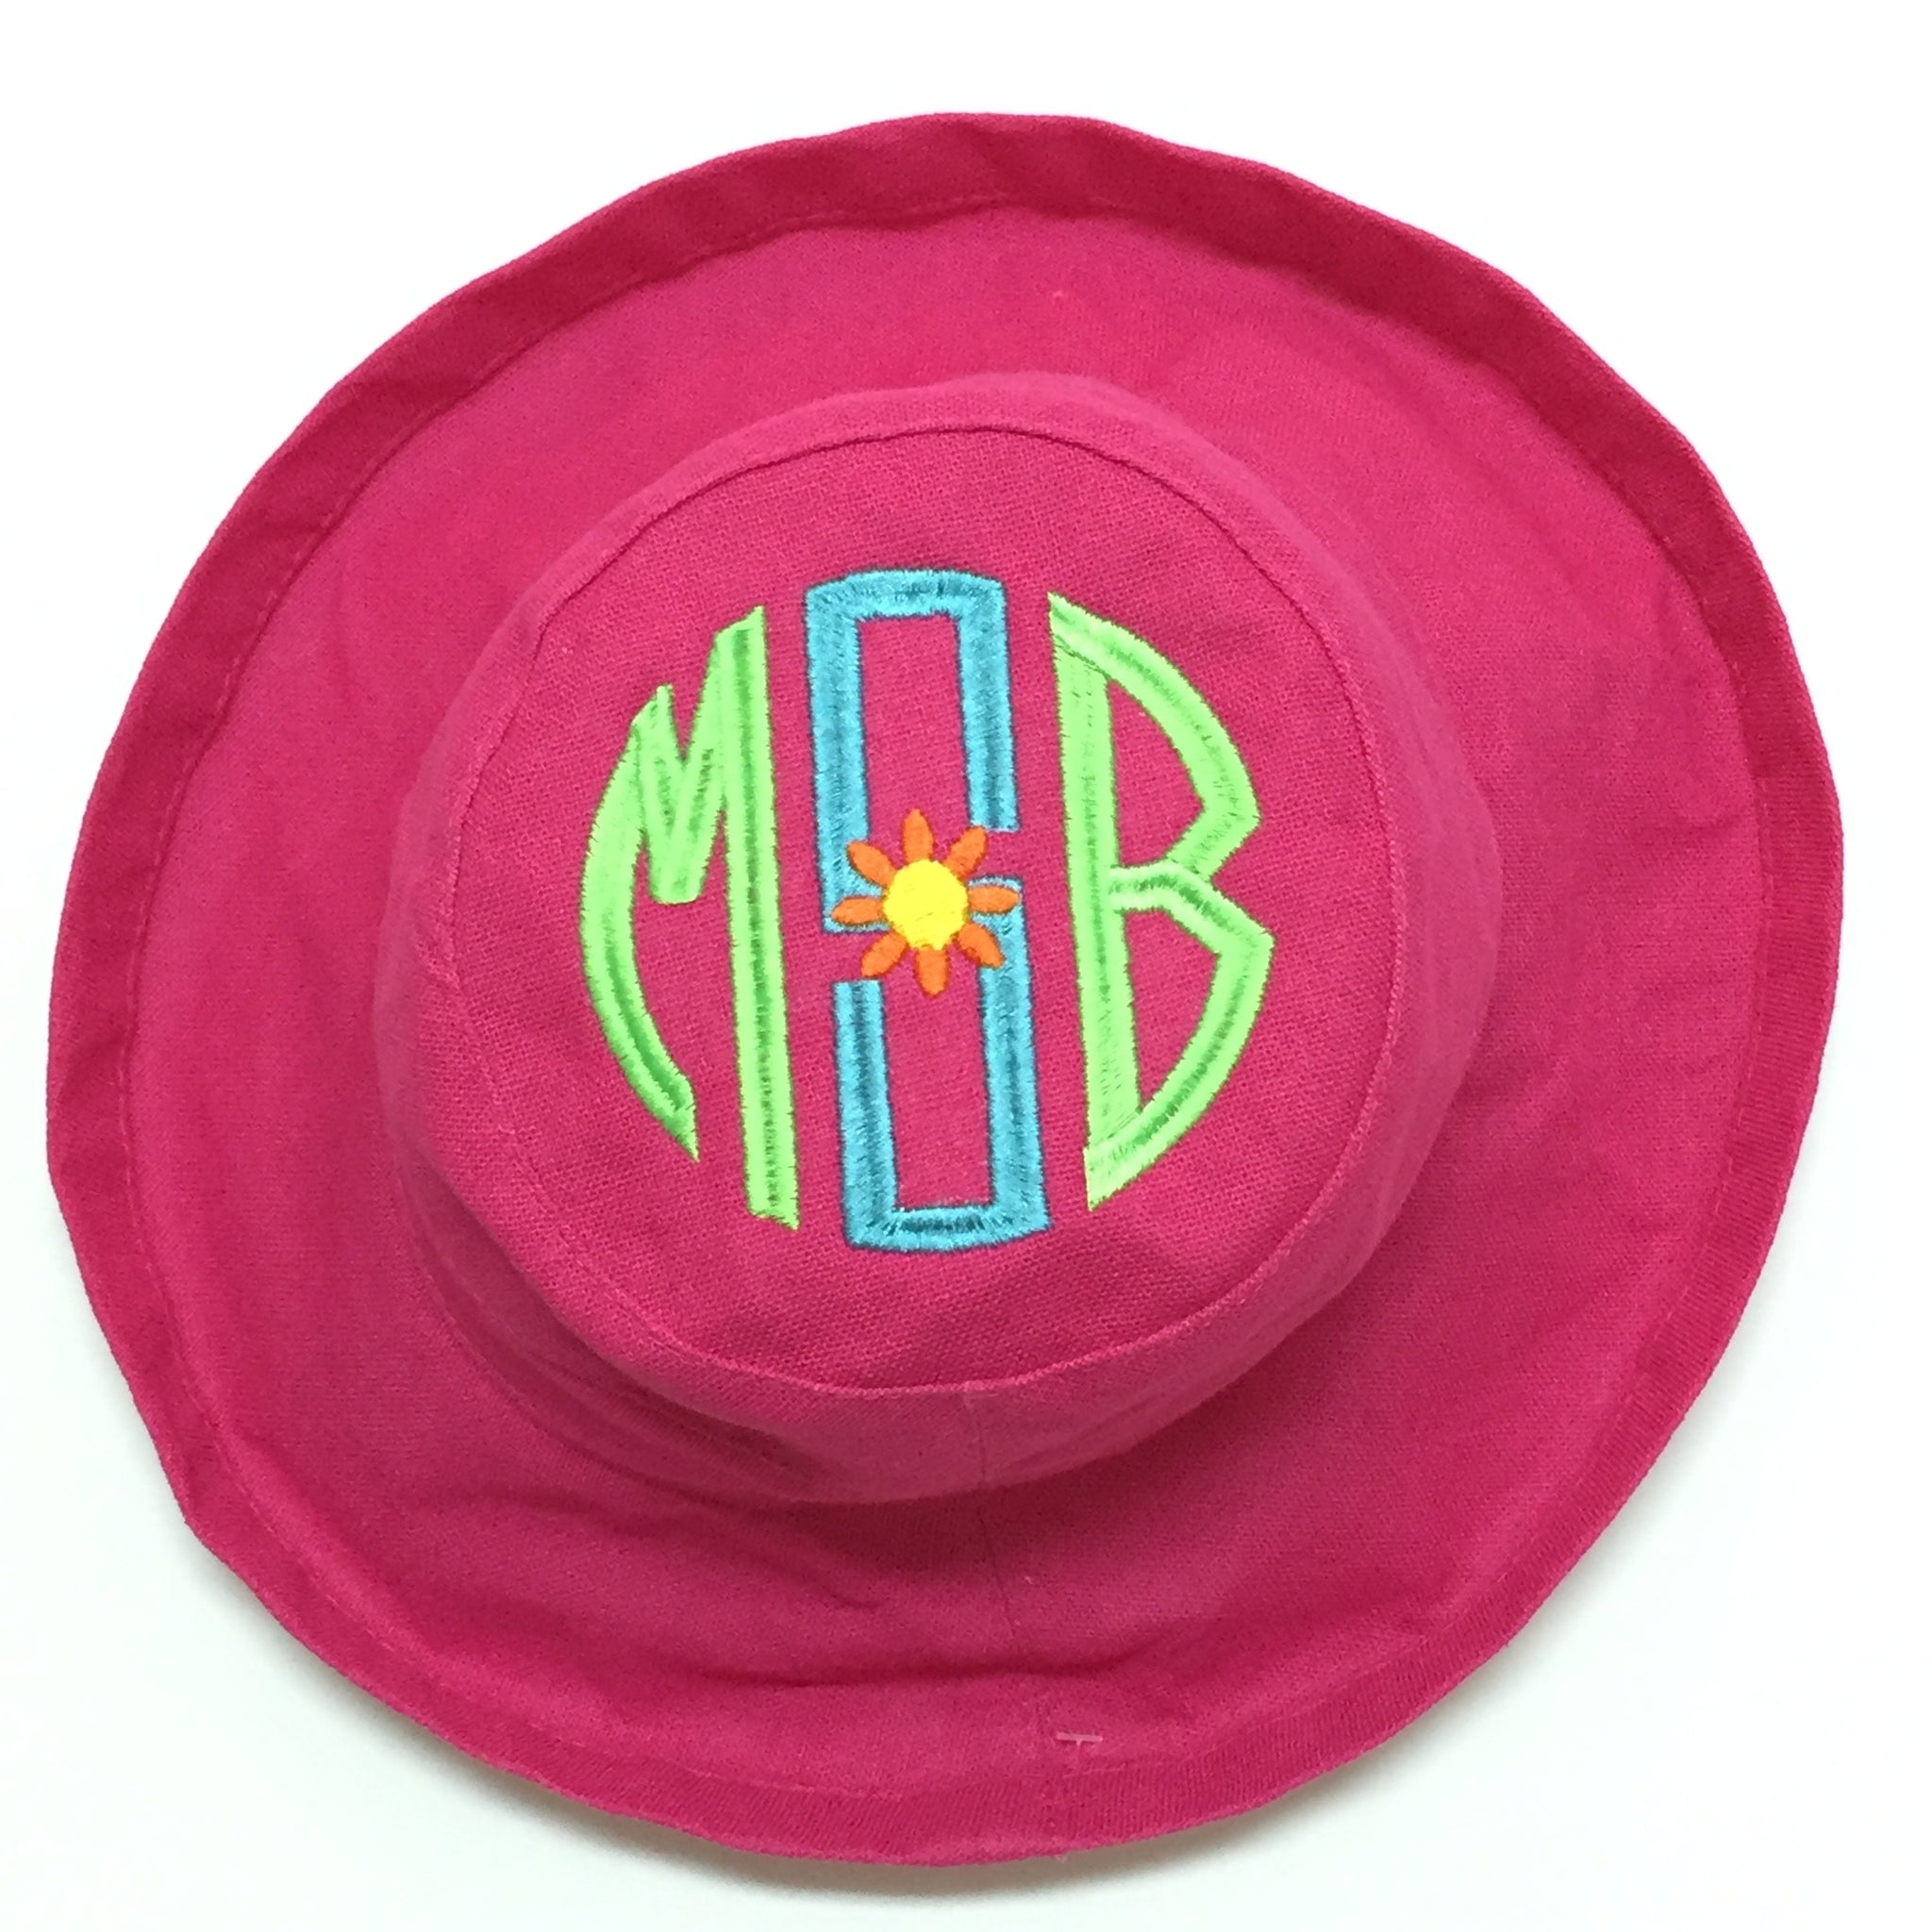 Hot Pink Cotton Sun Hat with UPF 50 sunscreen protection built in.